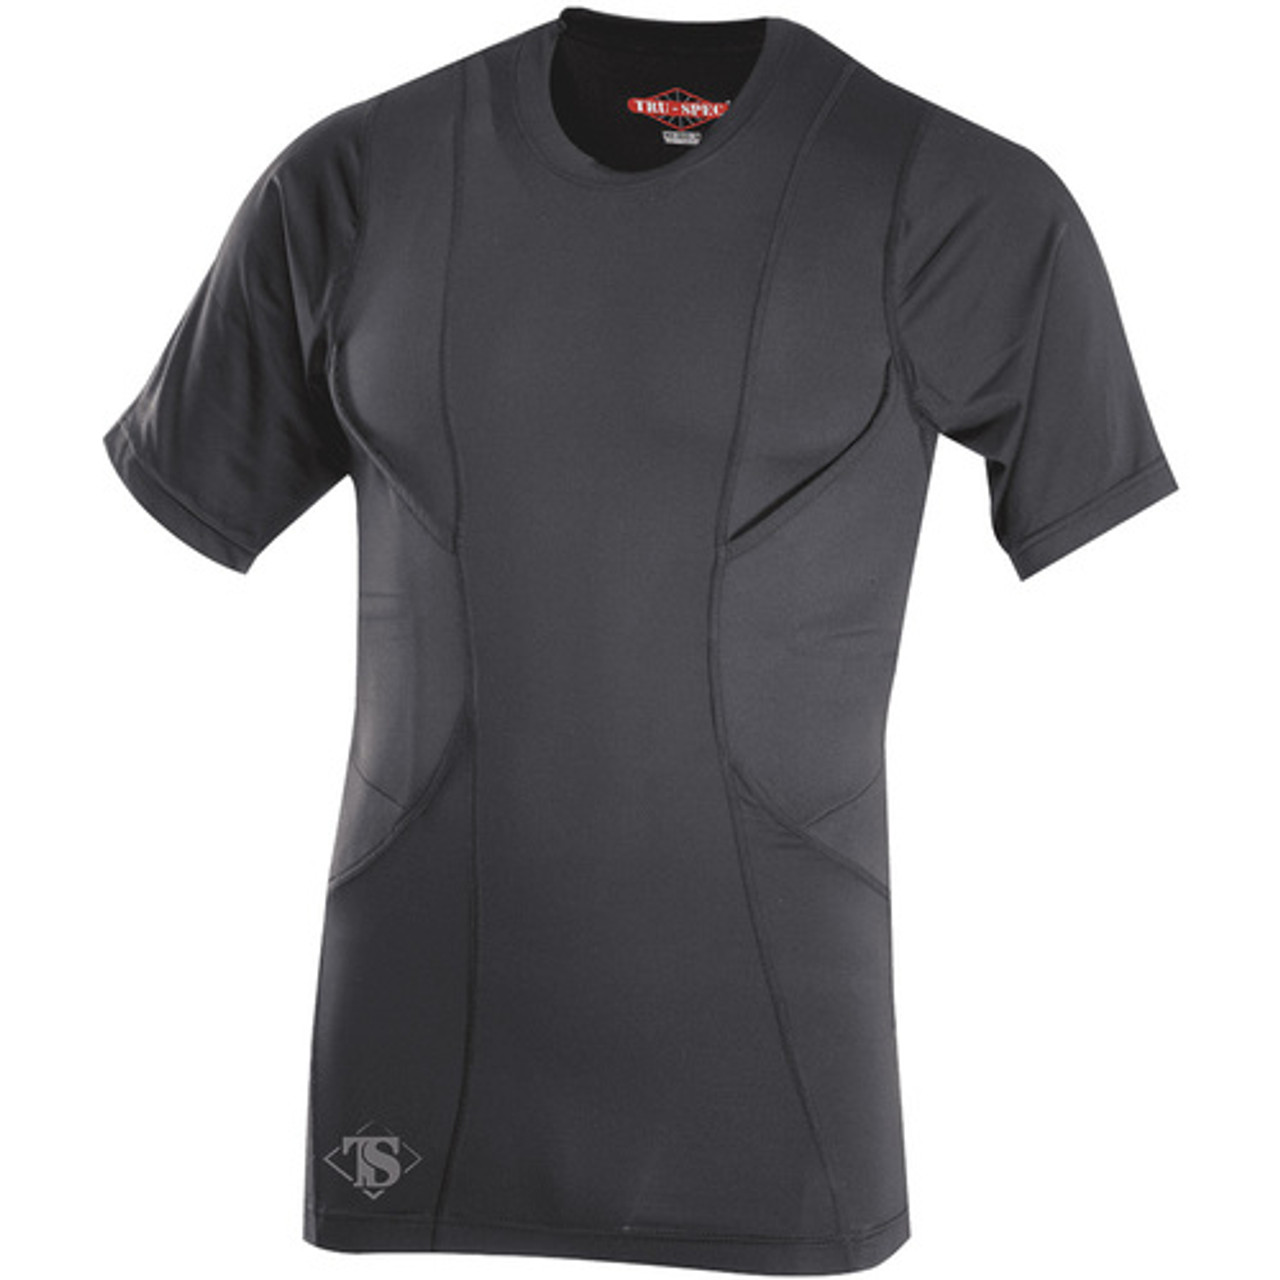 Tru-Spec 24-7 Series® Men's Short Sleeve Concealed Holster Tactical Shirt, anti-microbial, 85% Polyester/15% Spandex with Holster pocket, available in Black and White TS-1226